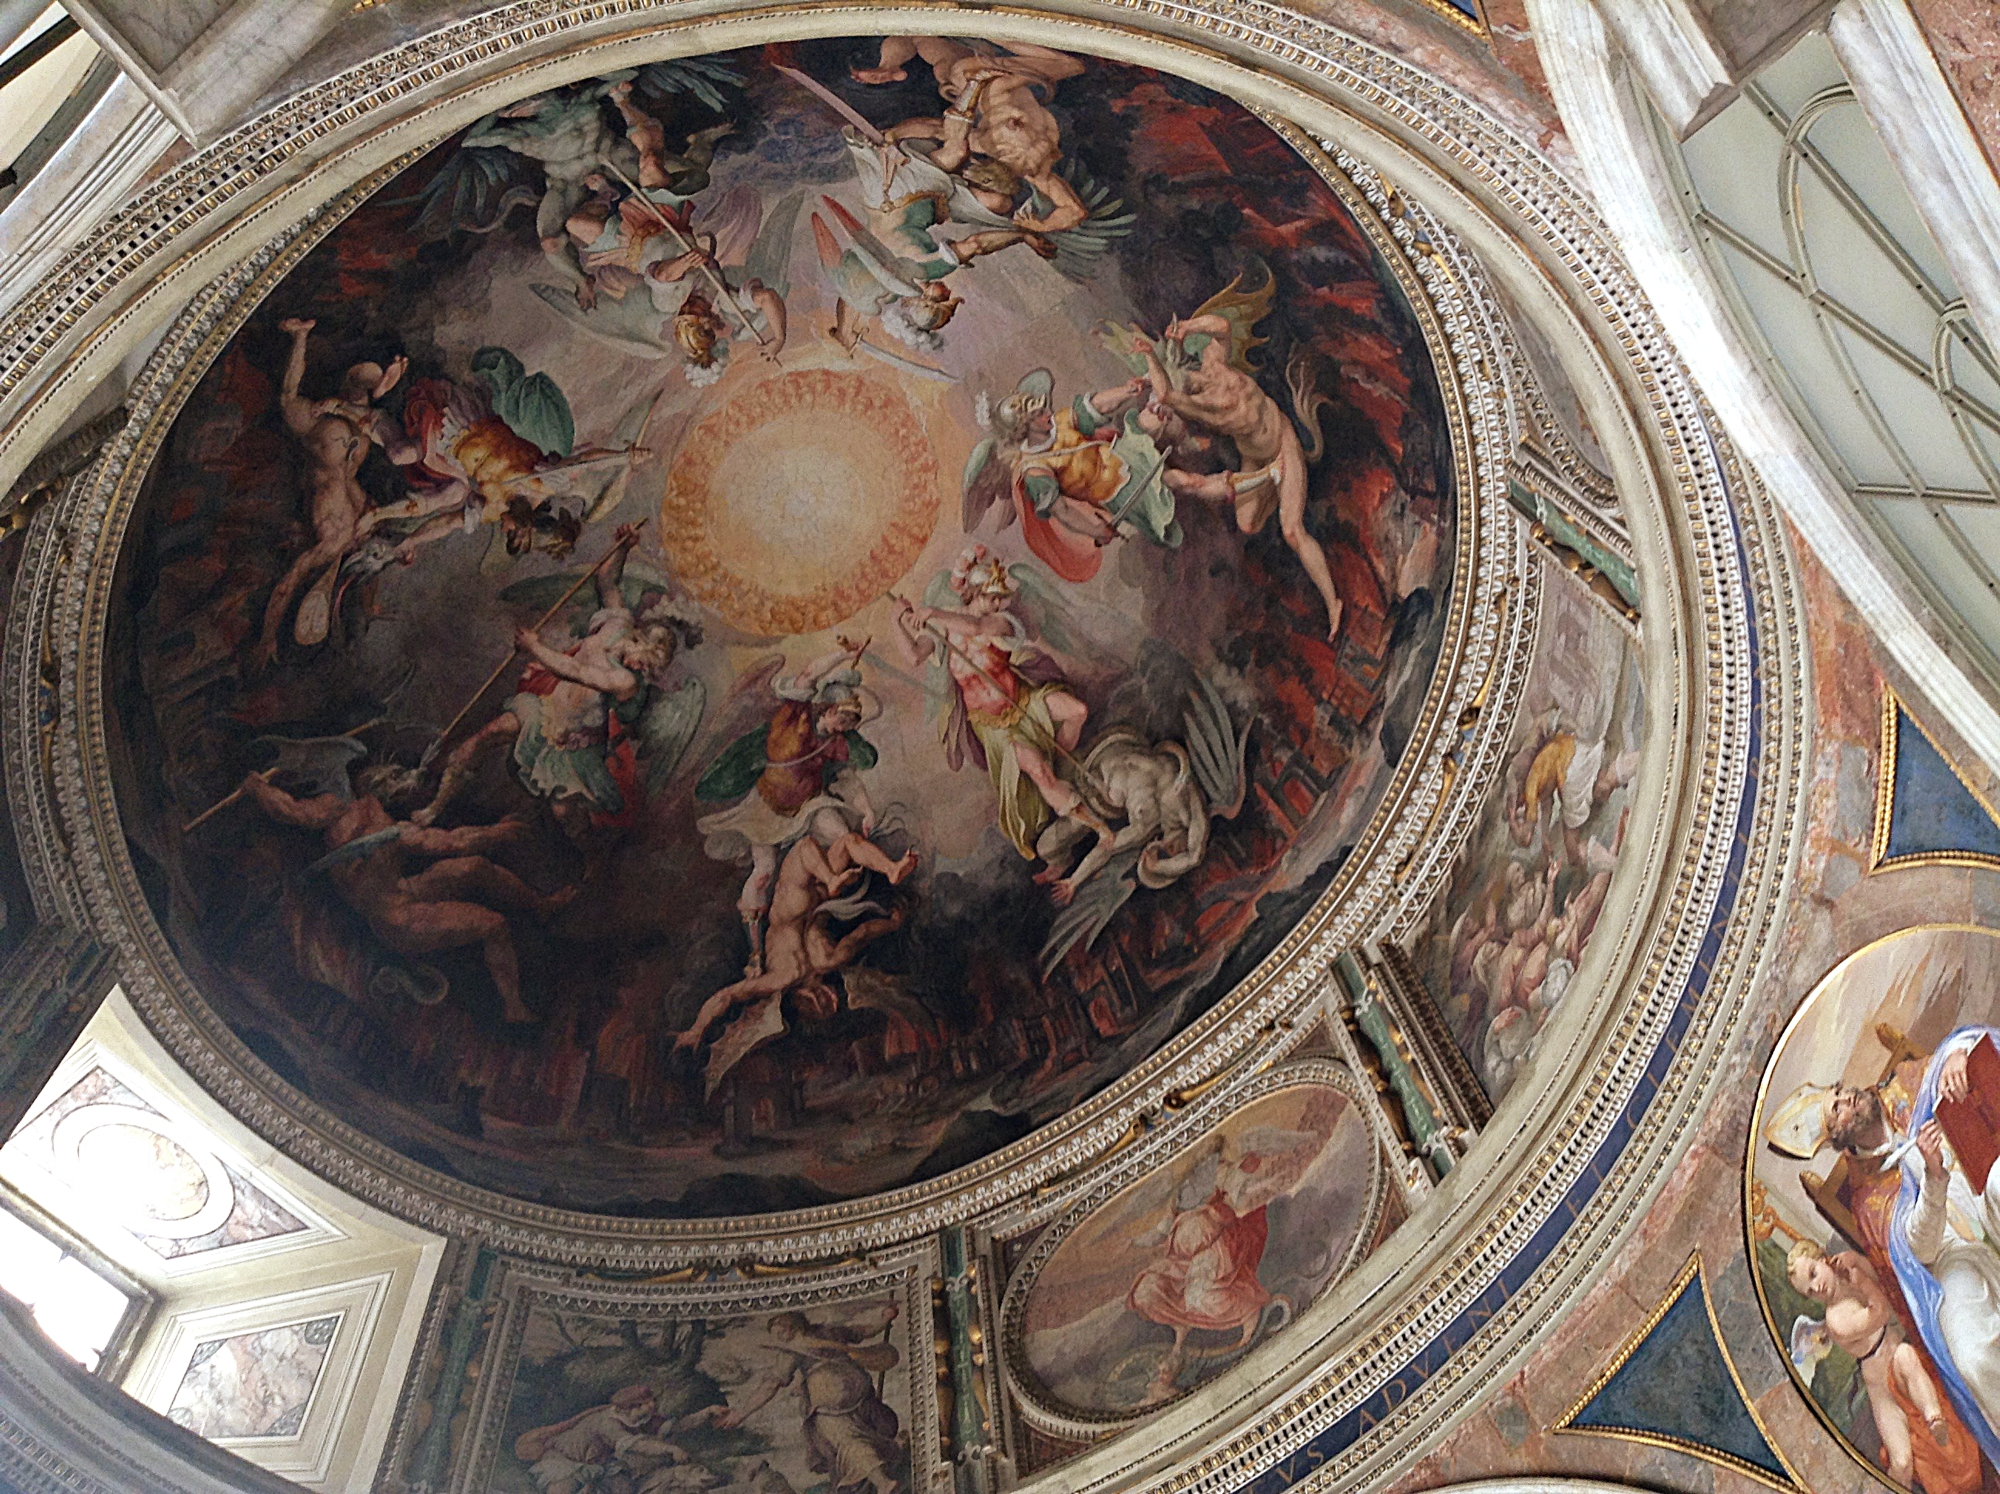 St. Peters Basilica Ceiling